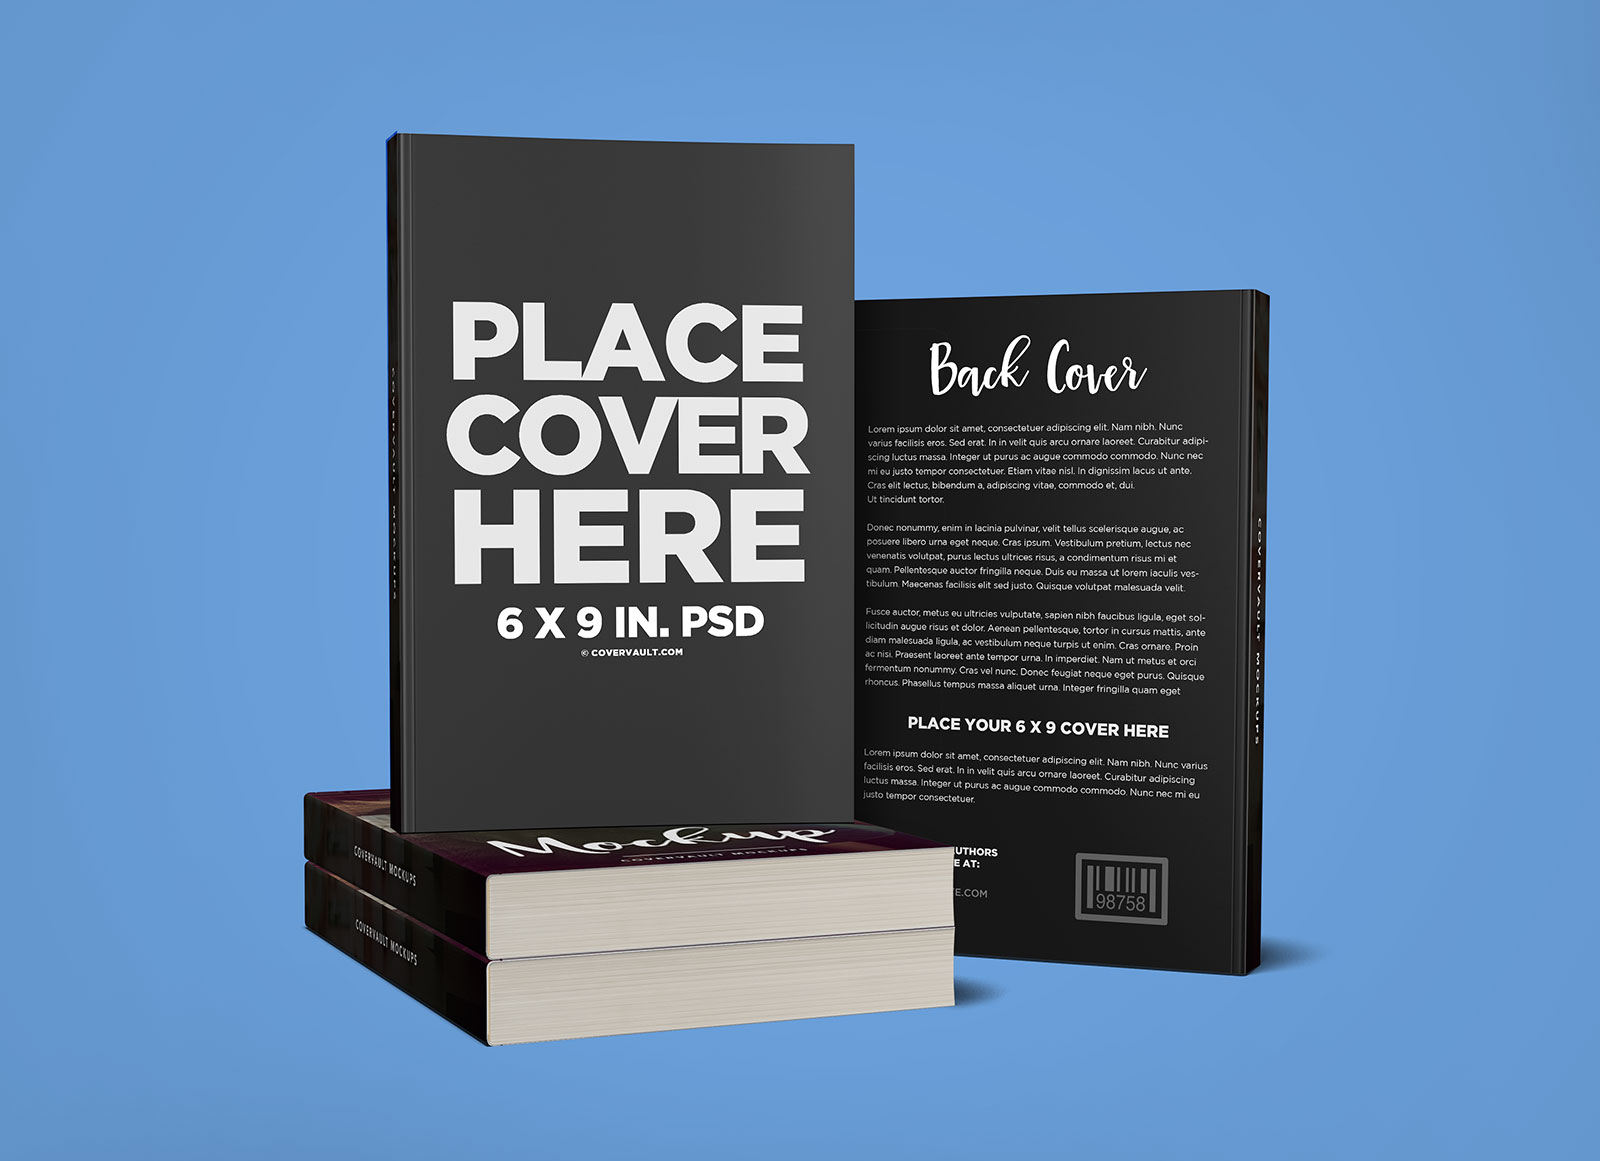 Mockup Free Magazine Cover Free Stacked Books With Back Cover Mockup Psd - Good Mockups